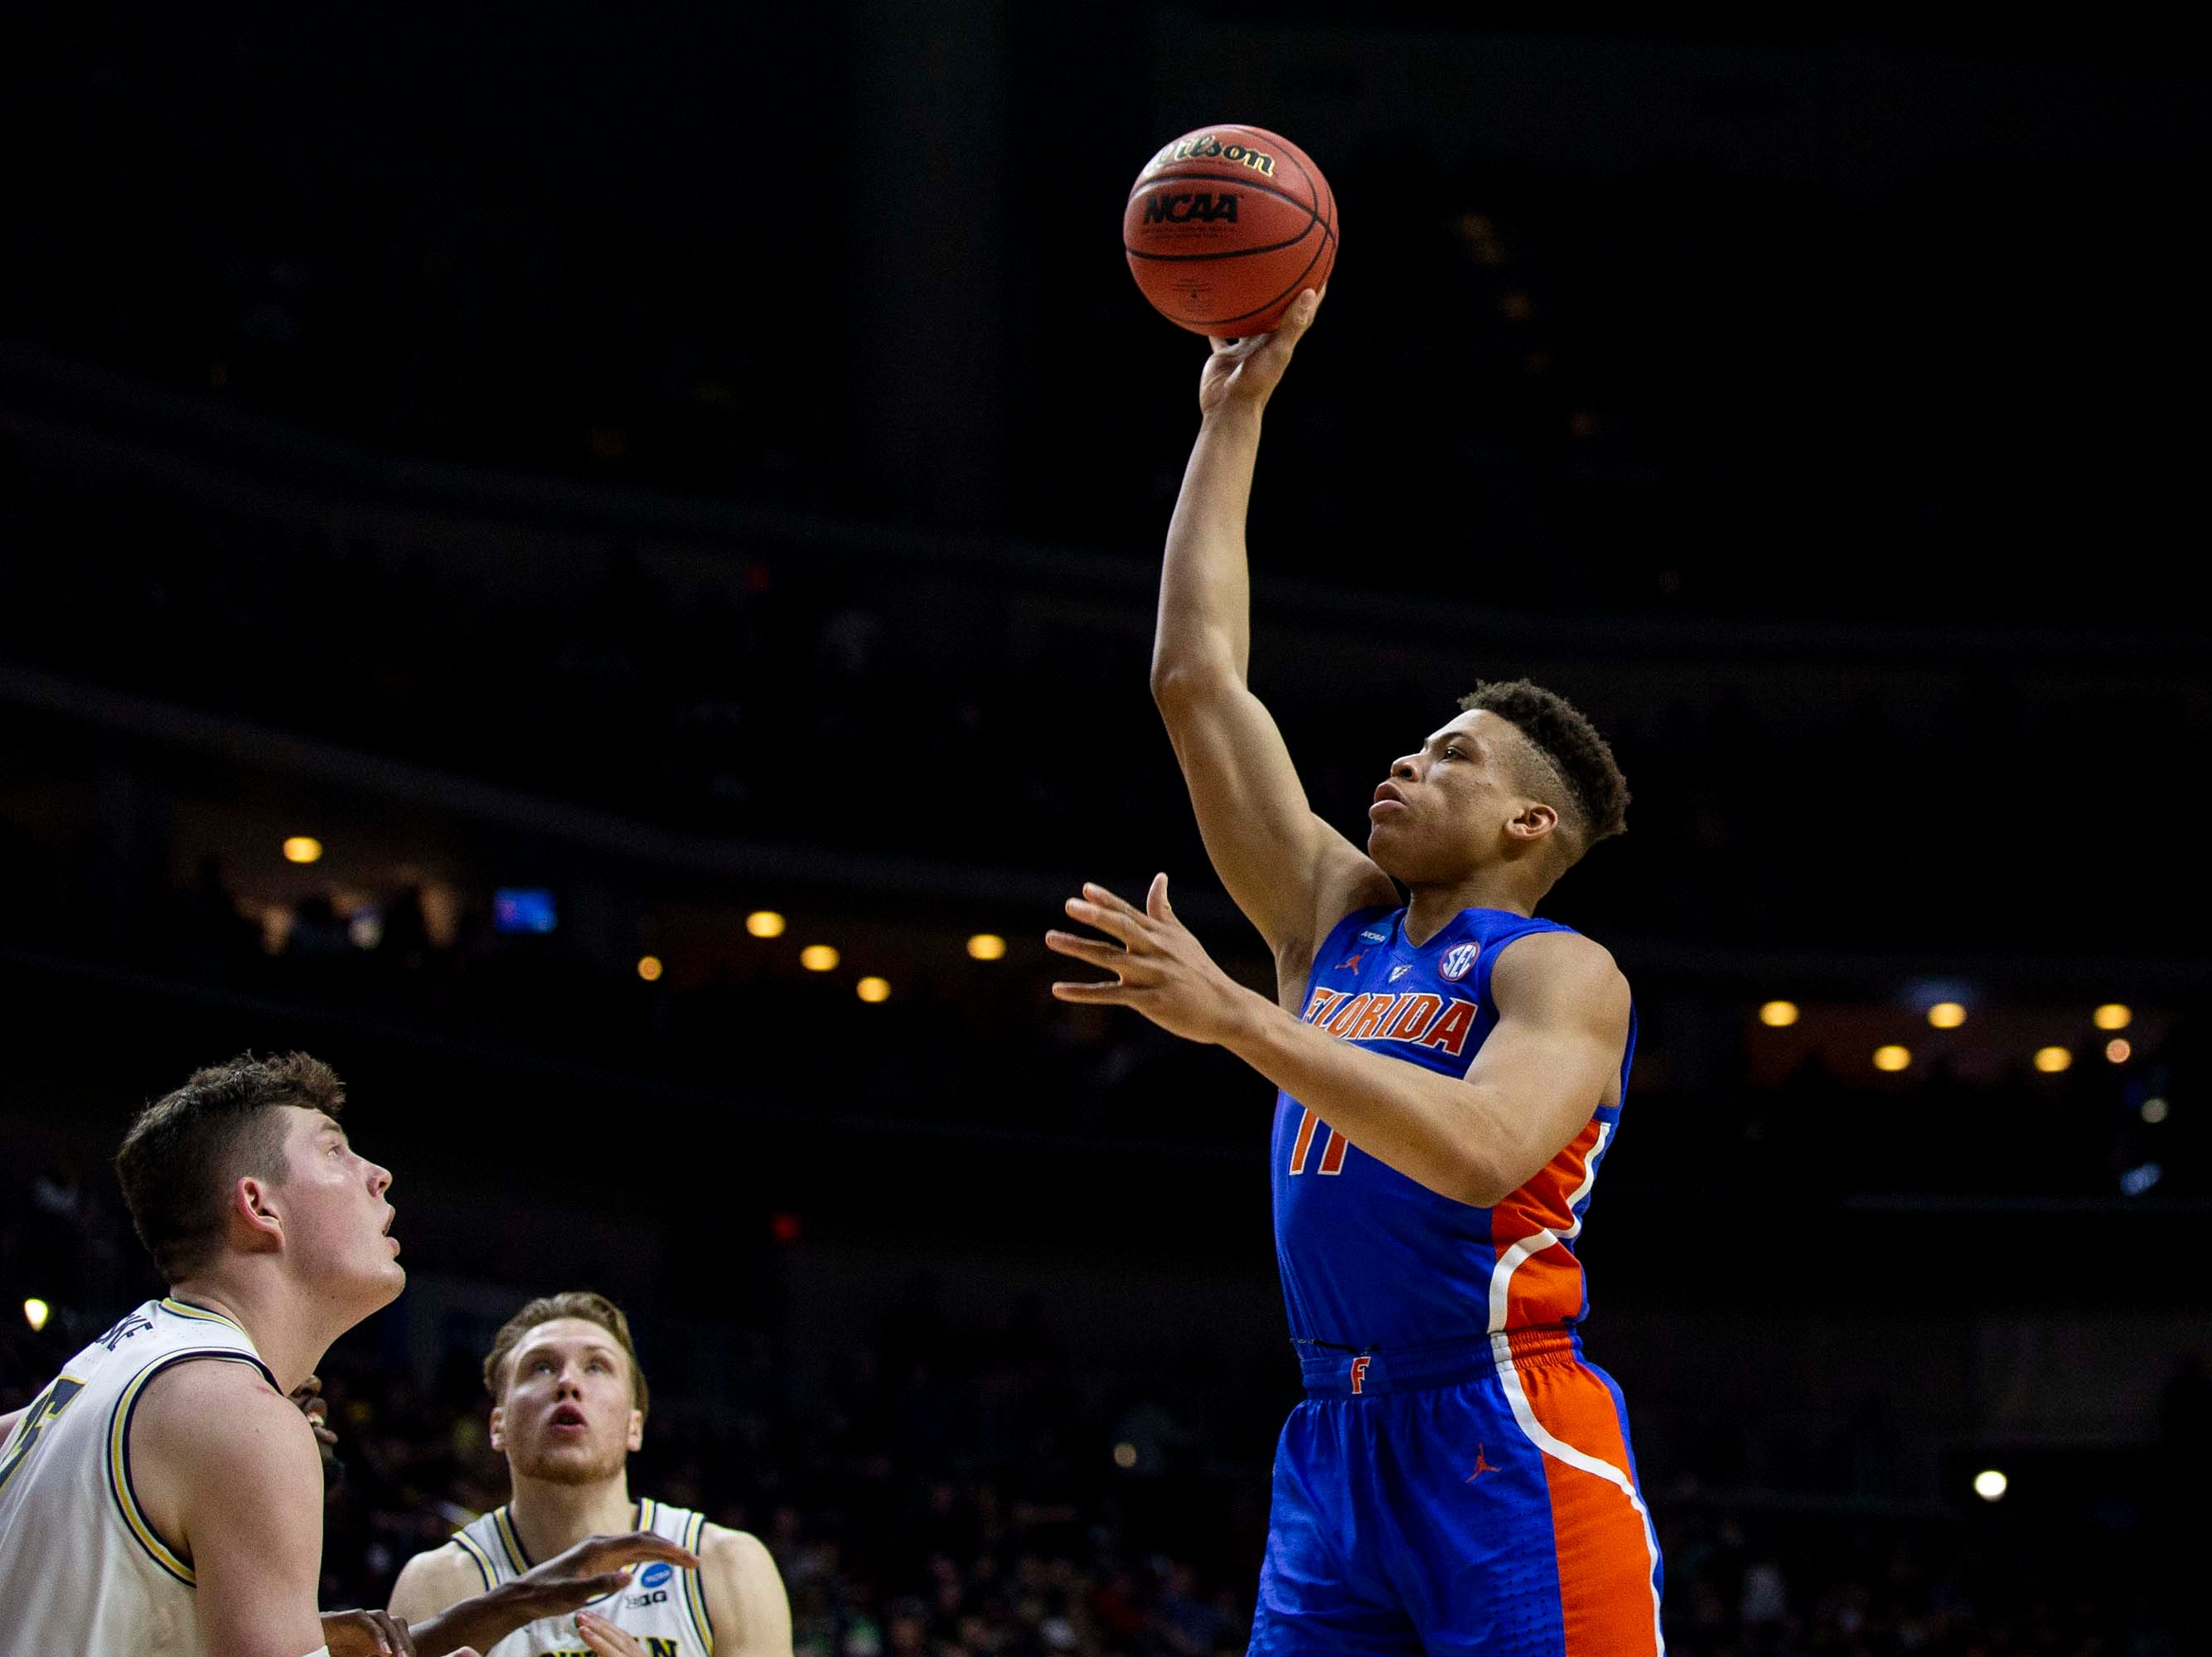 Florida's Keyontae Johnson shoots the ball during the NCAA Tournament second-round match-up between Michigan and Florida on Saturday, March 23, 2019, in Wells Fargo Arena in Des Moines, Iowa.